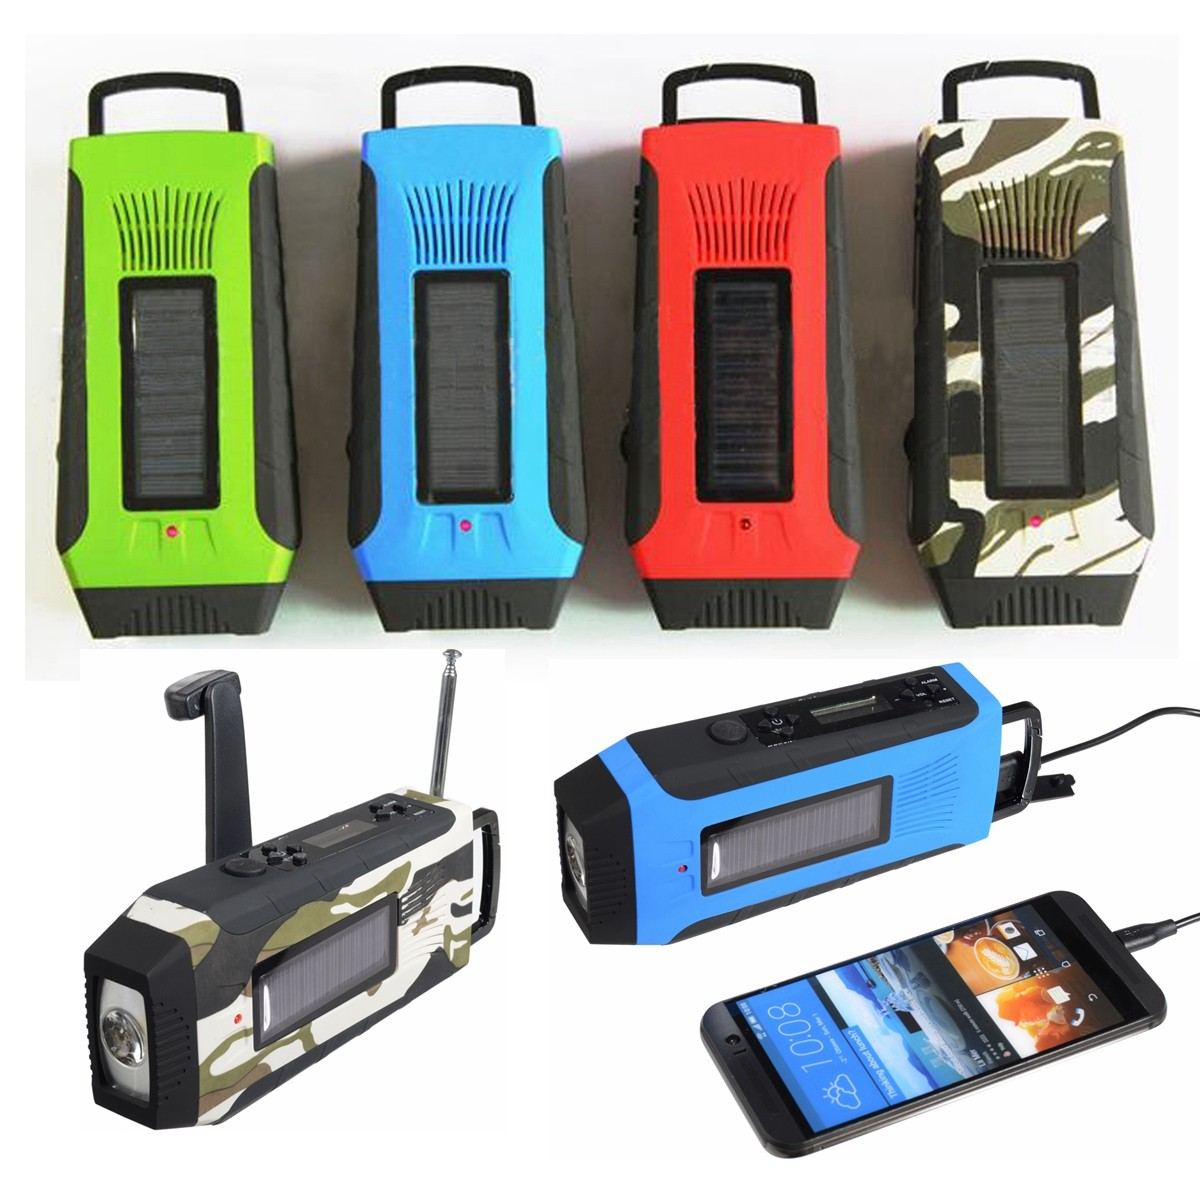 US $26 99 50% OFF|LEORY Red Outdoor Radio Survival Solar Self Powered AM FM  NOAA Weather Radio Phone Power Bank for Adventure Camping-in Radio from